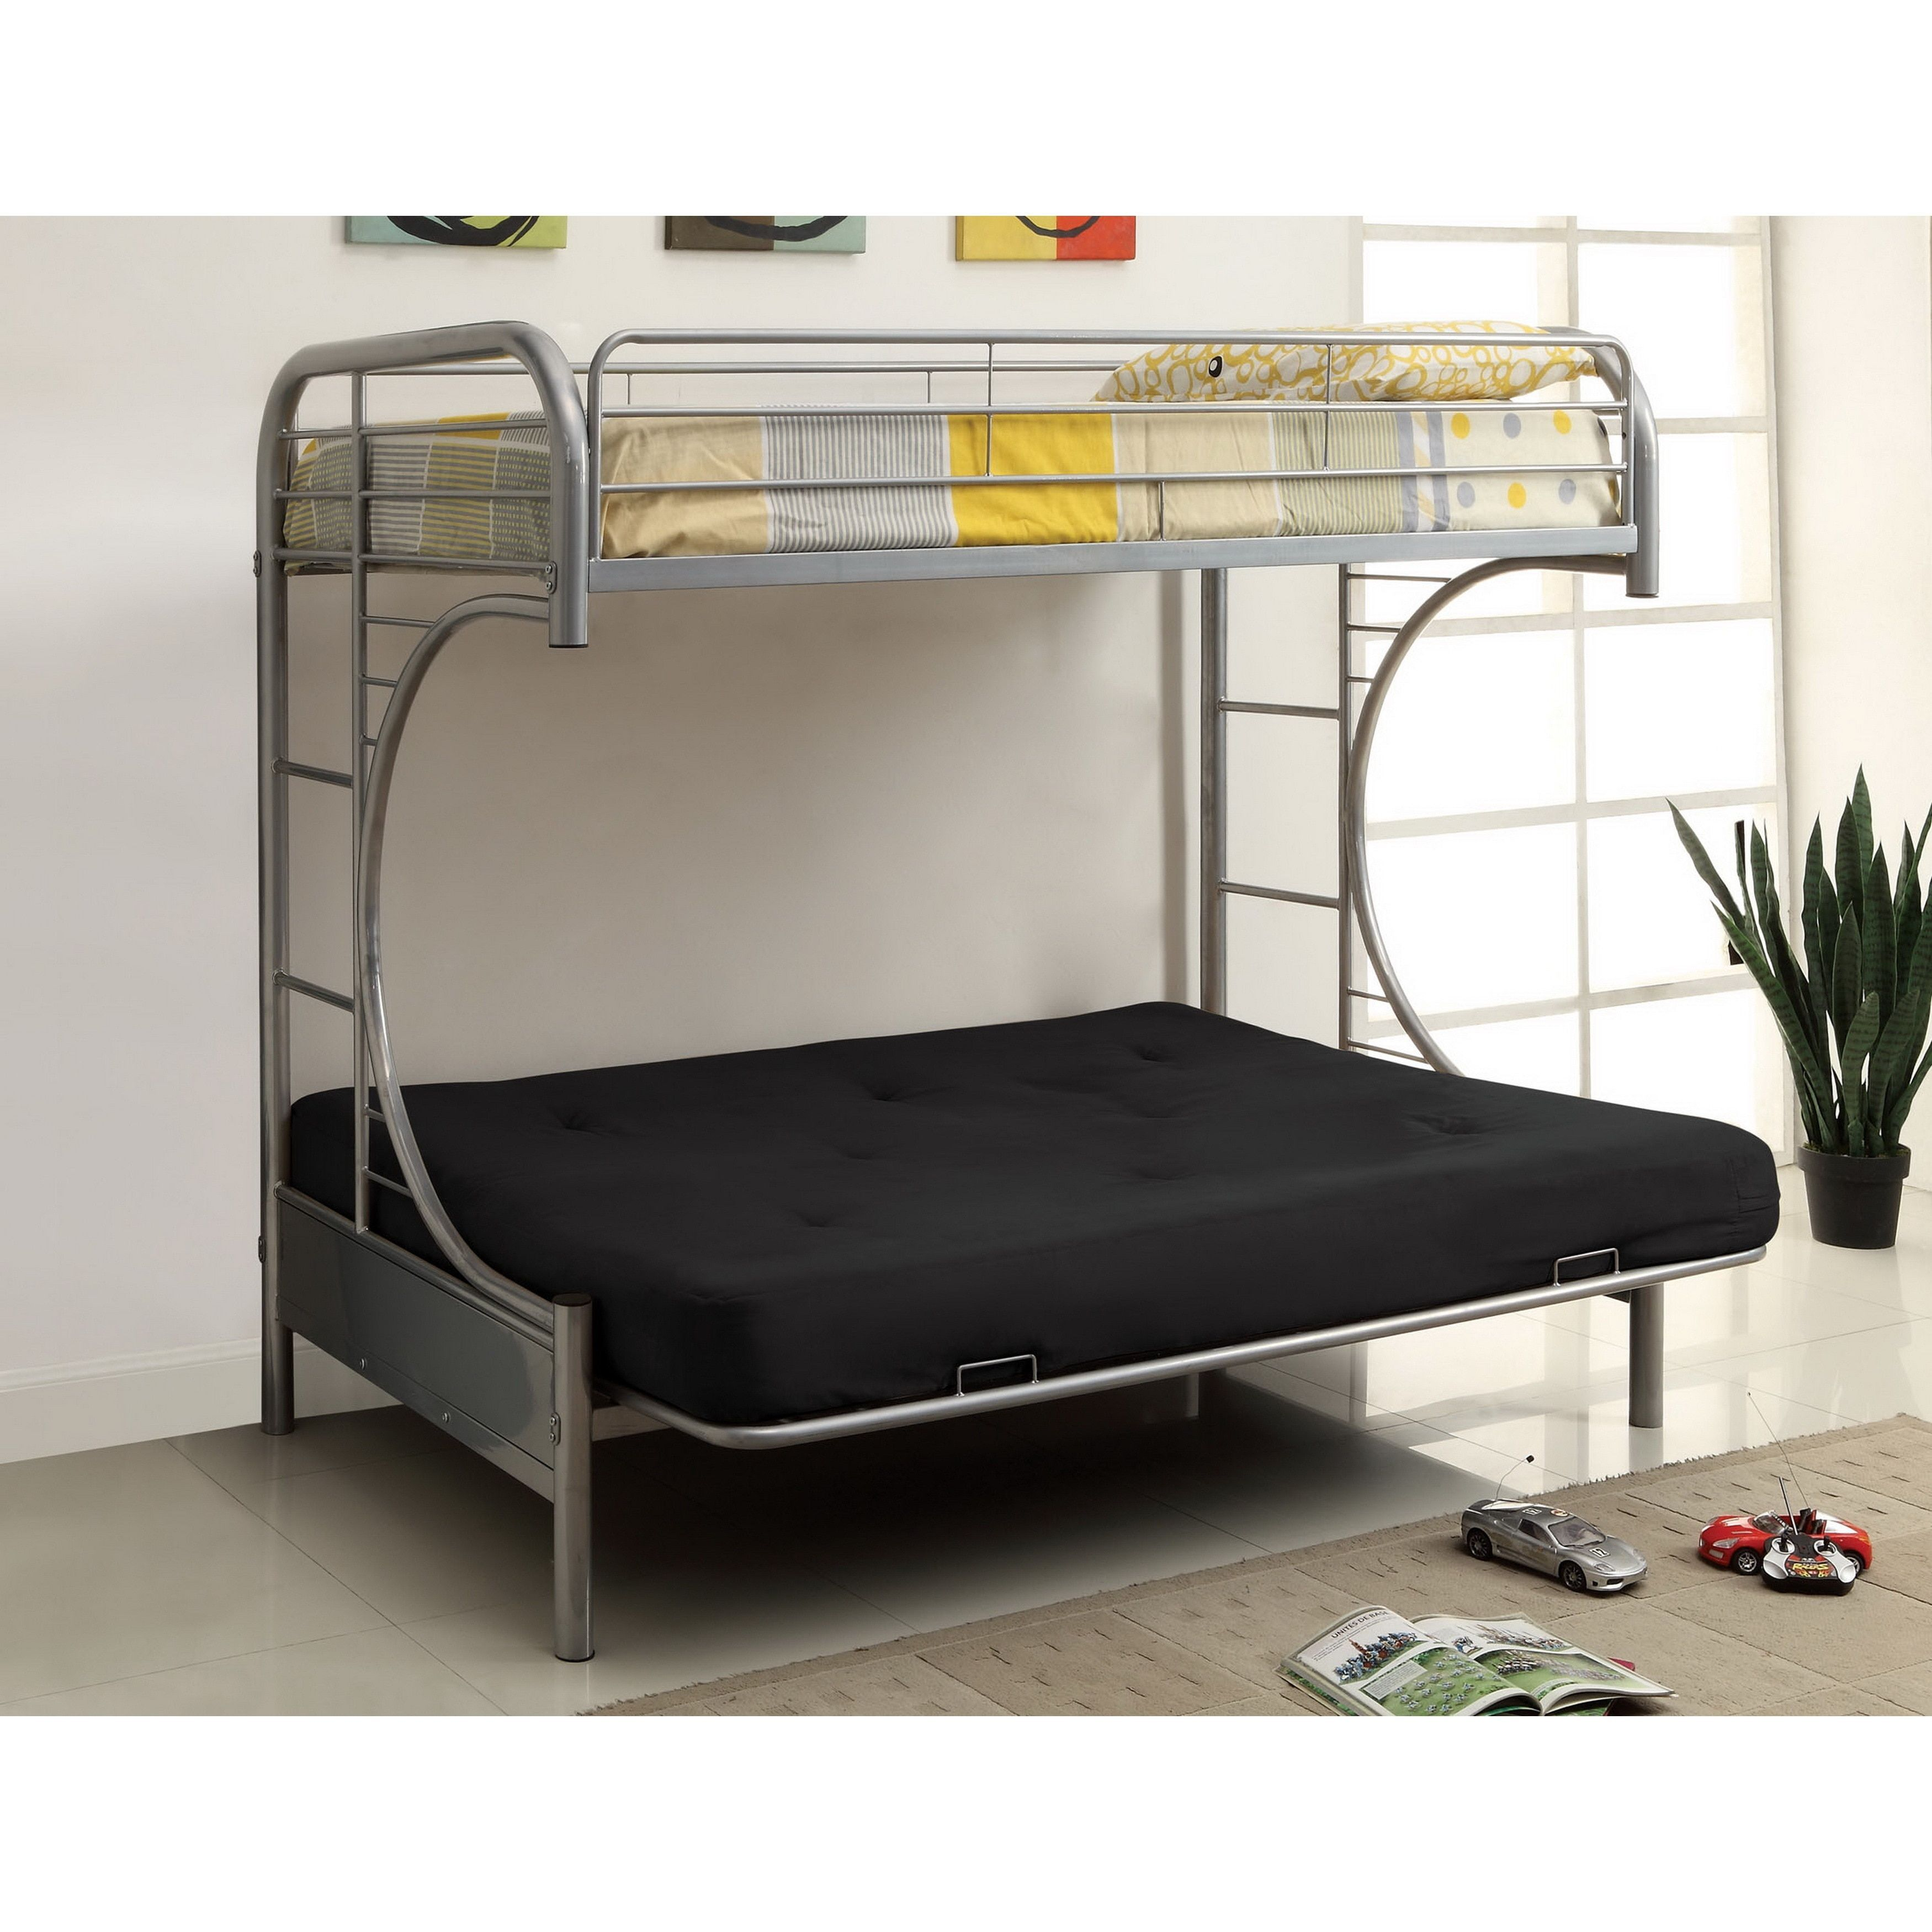 p if beds bed metal bunk futon with mall wood included mattress